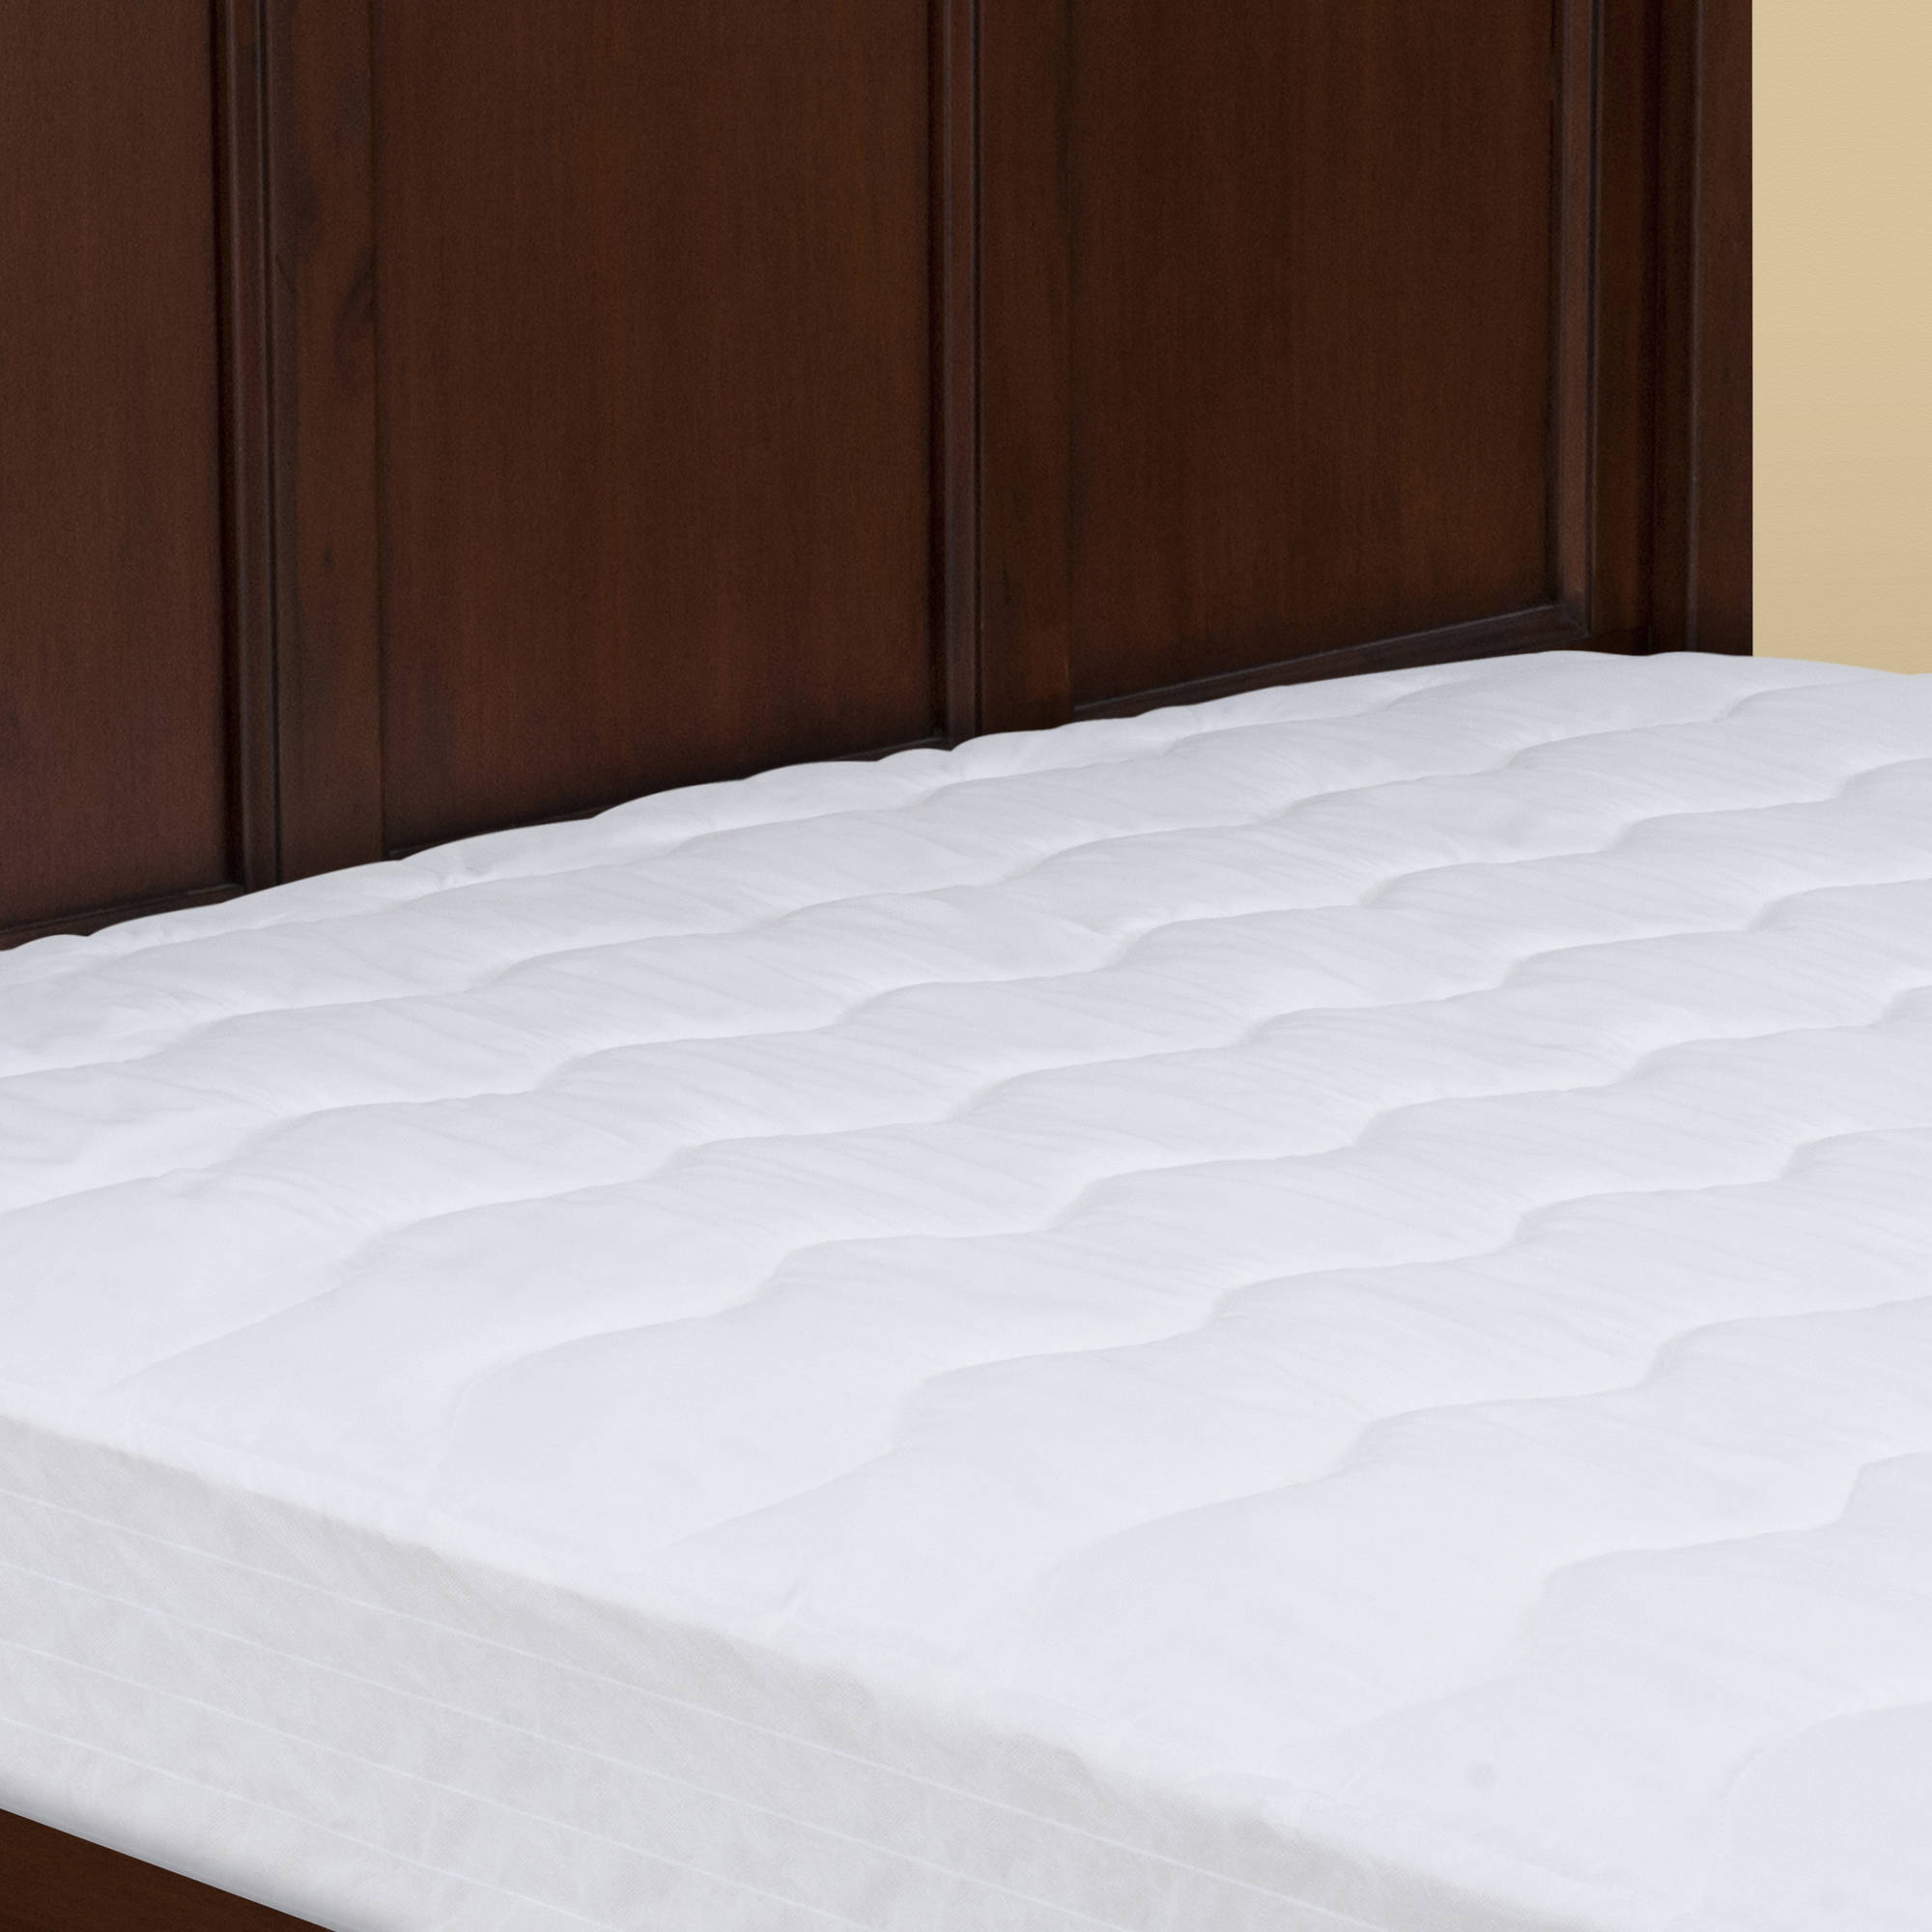 thick mattress pad. Mainstays Extra-Thick Mattress Pad 7.5 Oz Fill In Multiple Sizes Image 2 Of 5 Thick